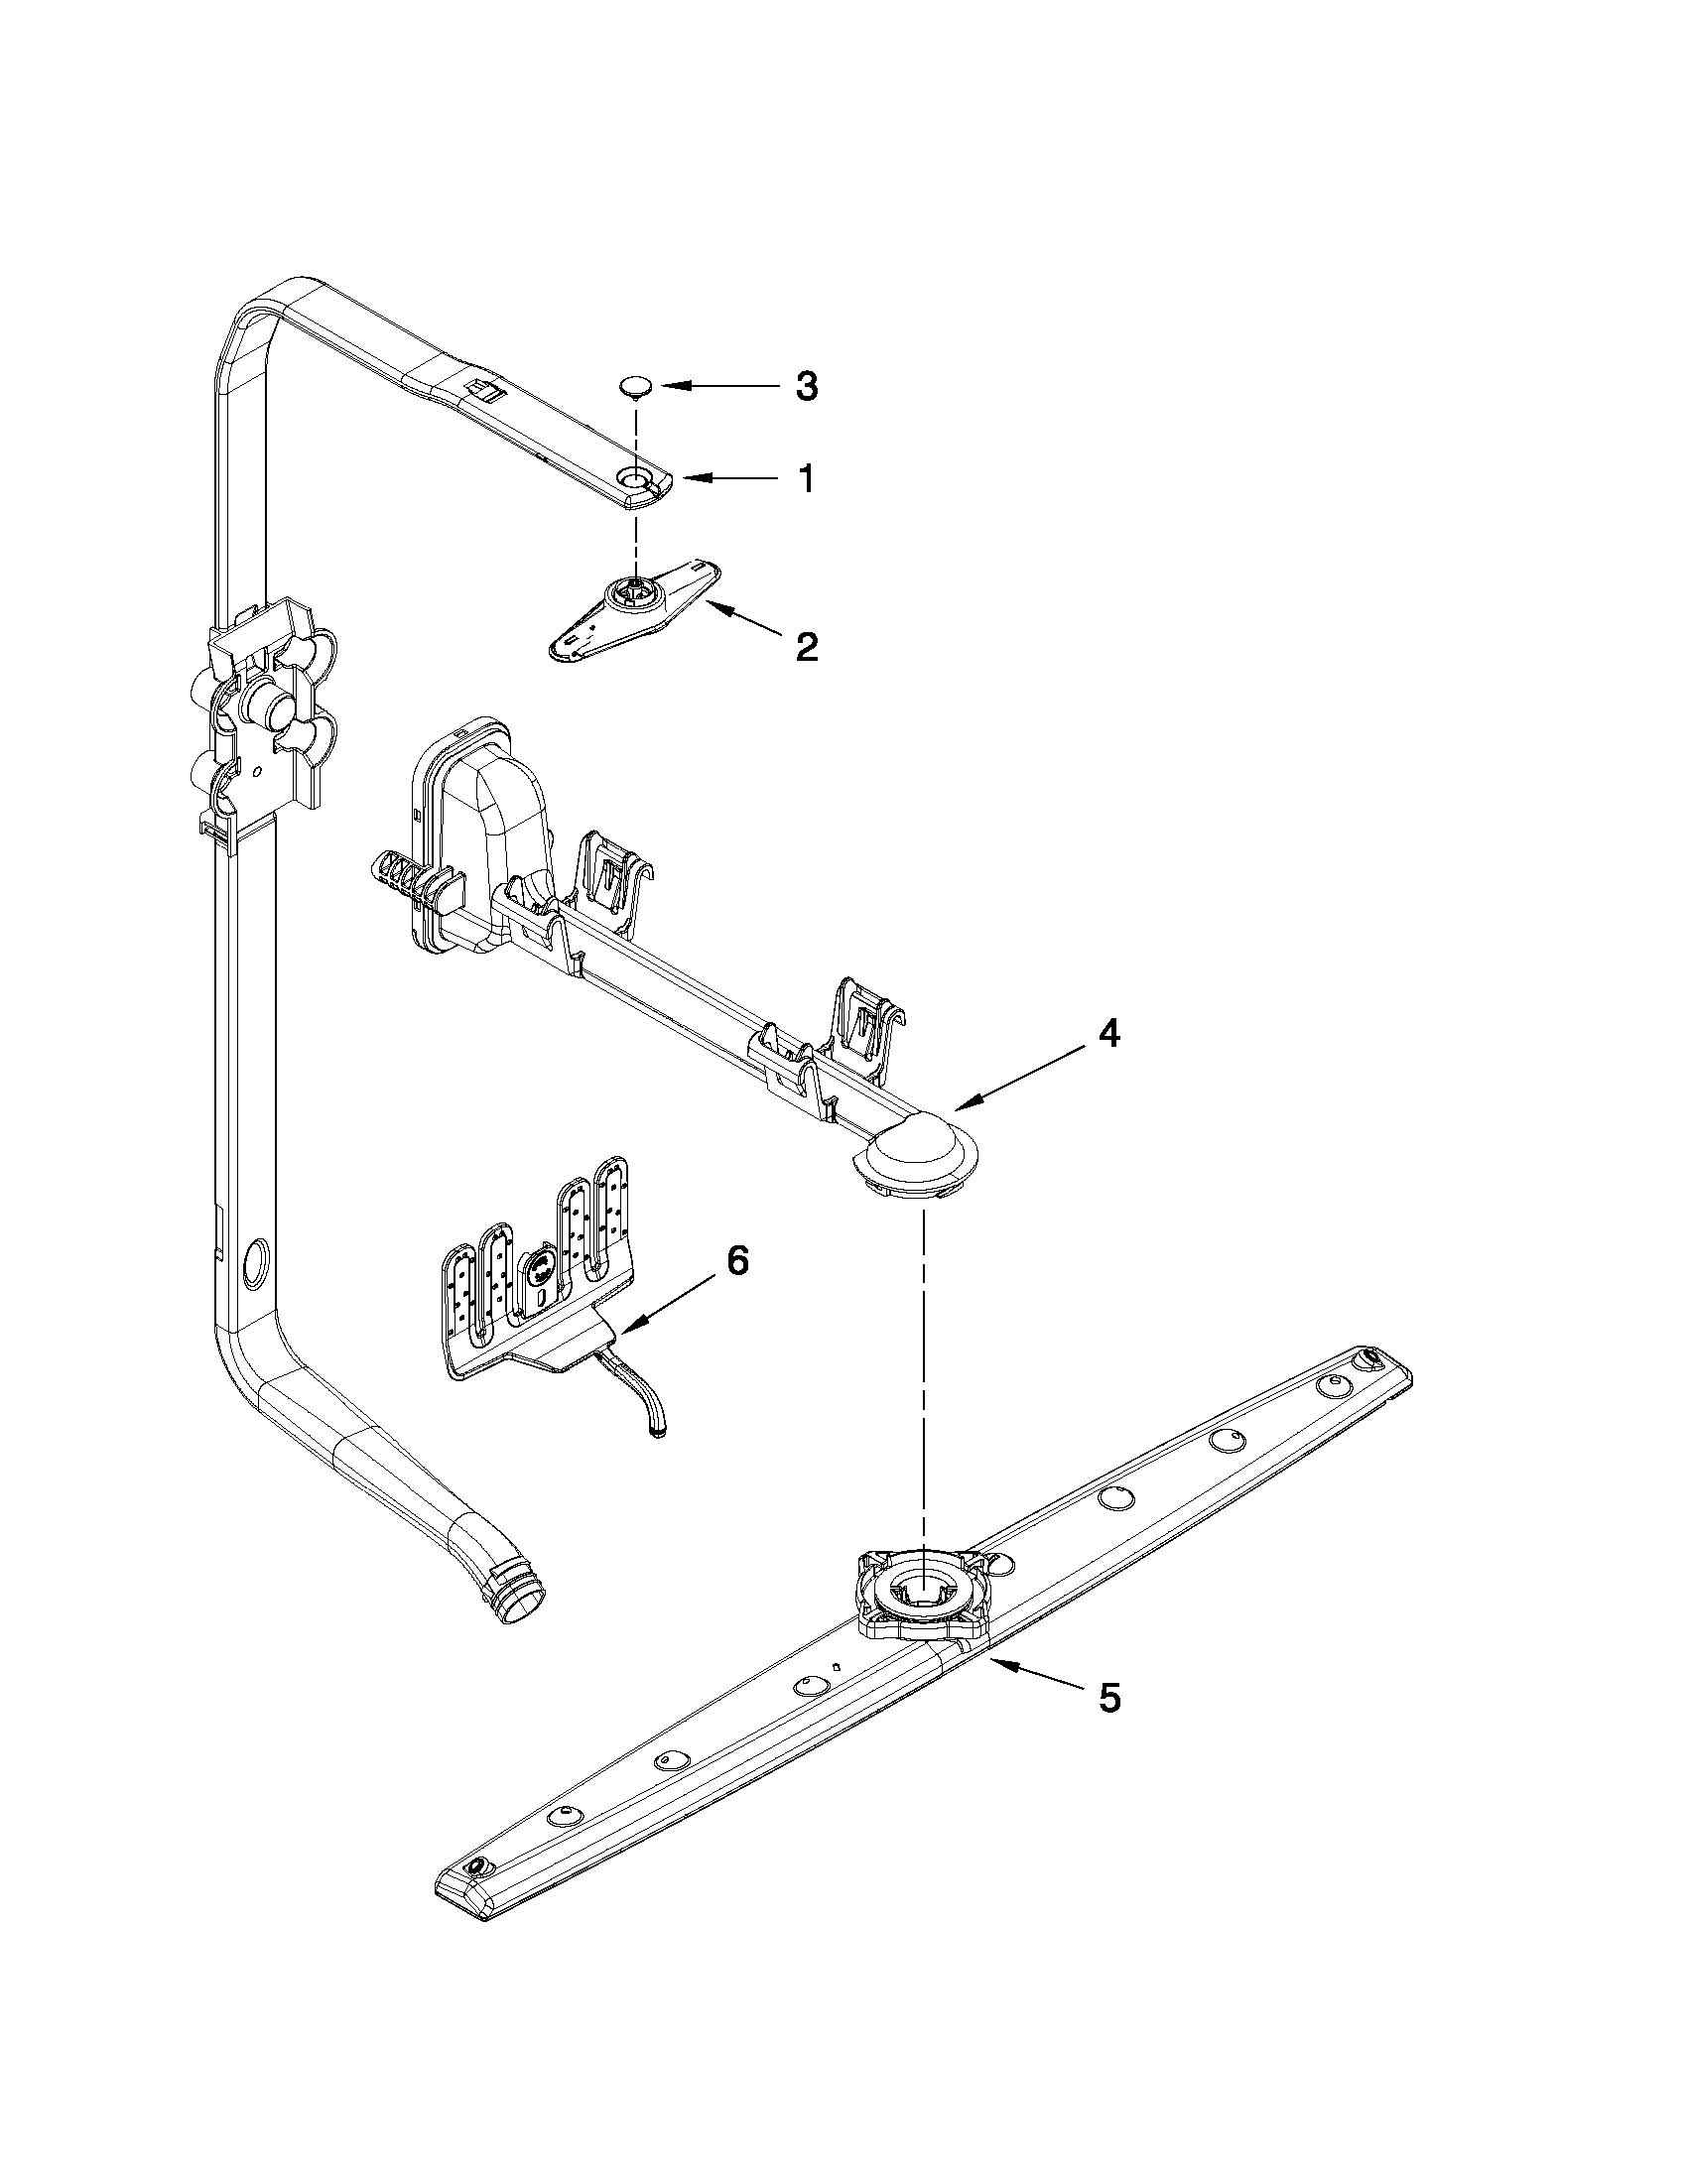 Whirlpool WDF730PAYB1 upper wash and rinse parts diagram